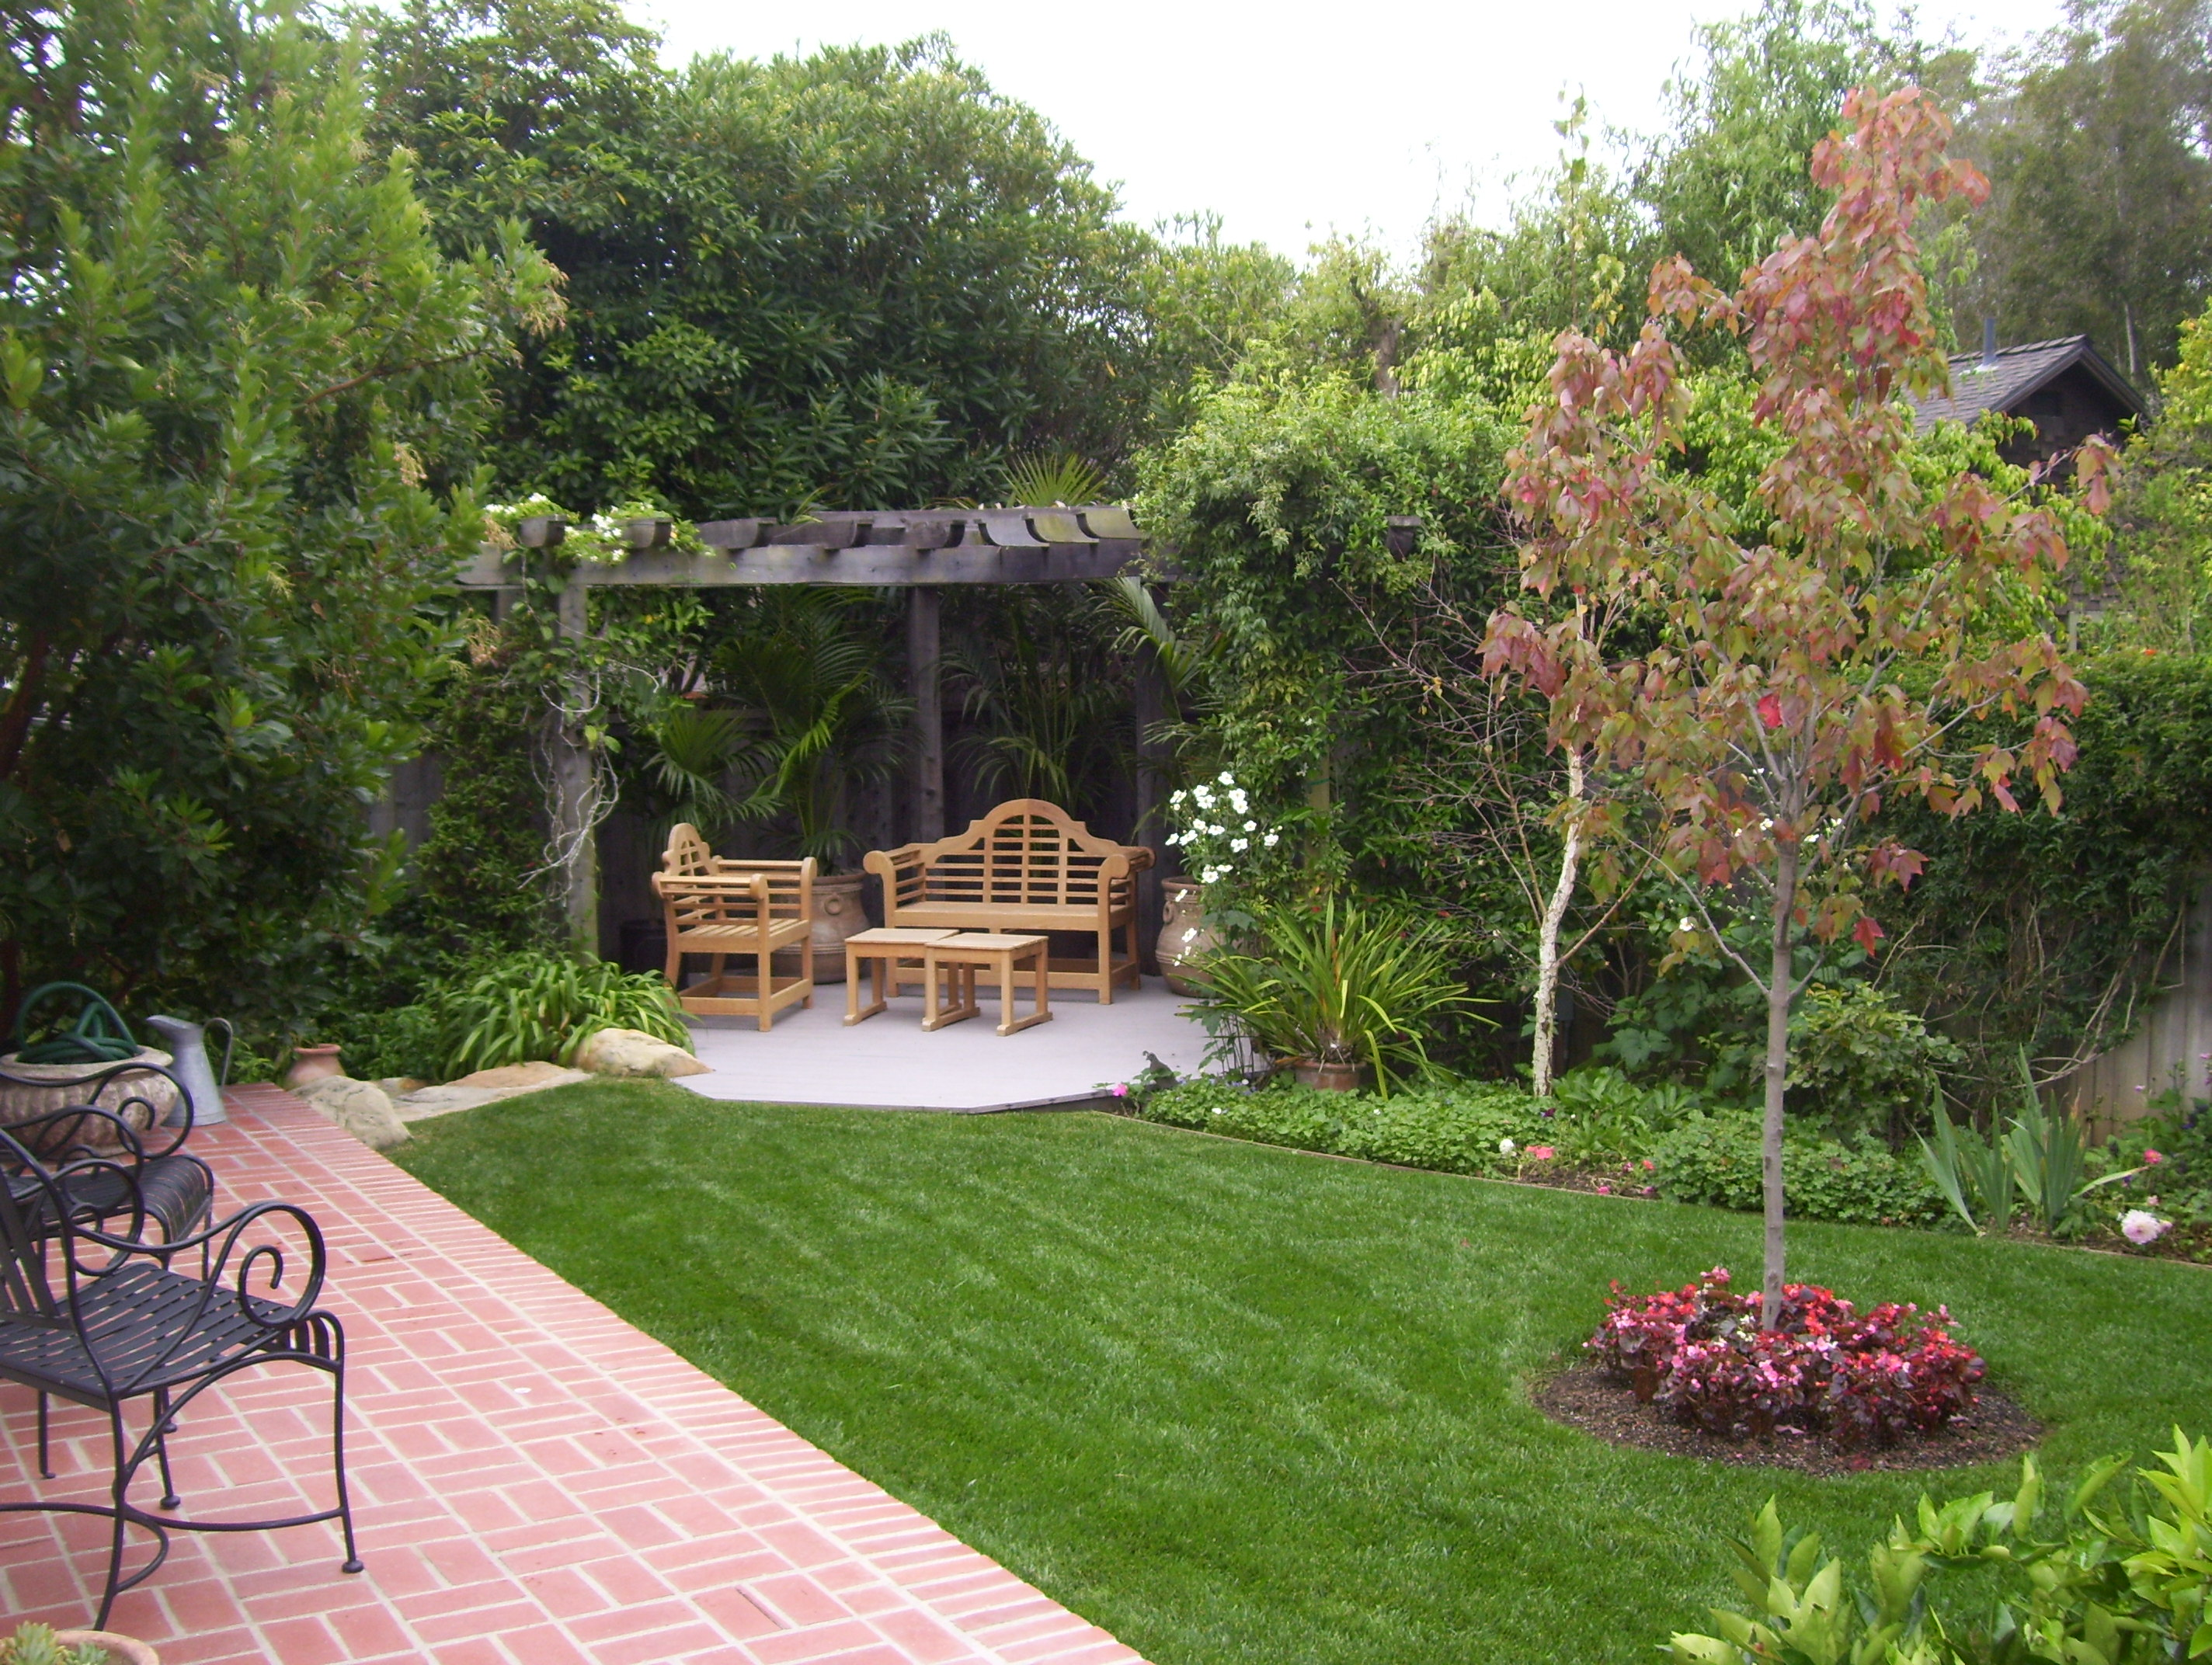 Santa barbara lawn and garden maintenenace landscape for Backyard garden design